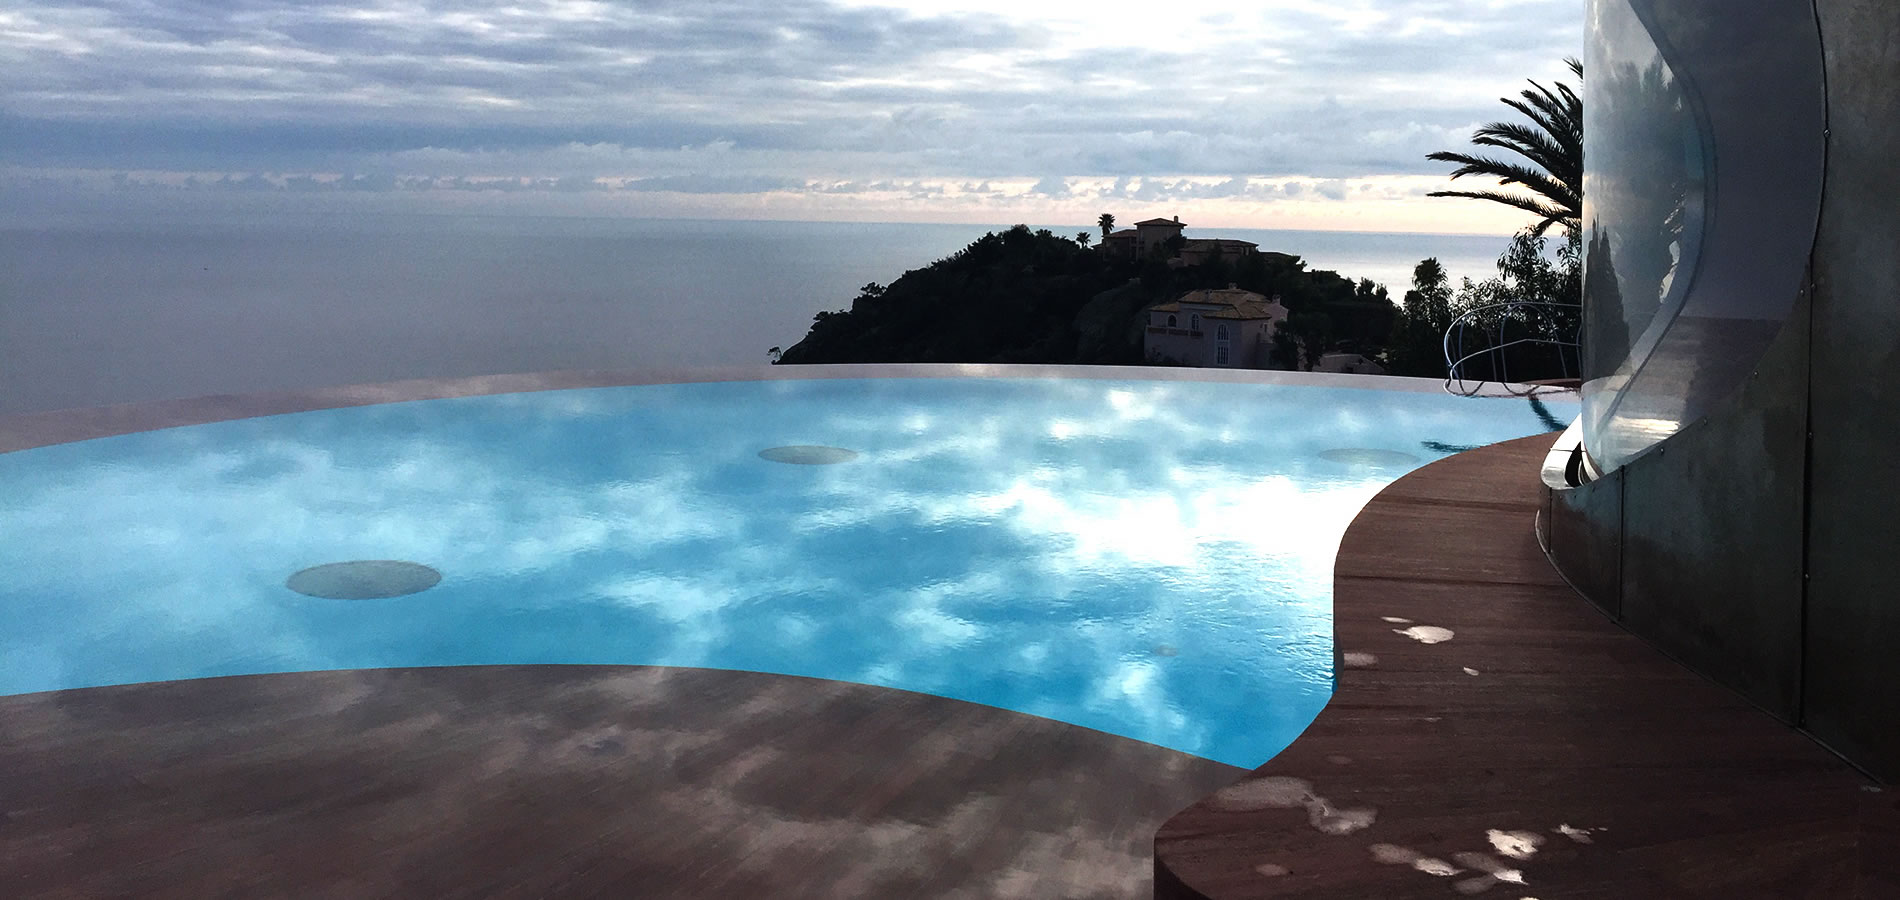 The Palais Bulles in balance between the sea and the sky.